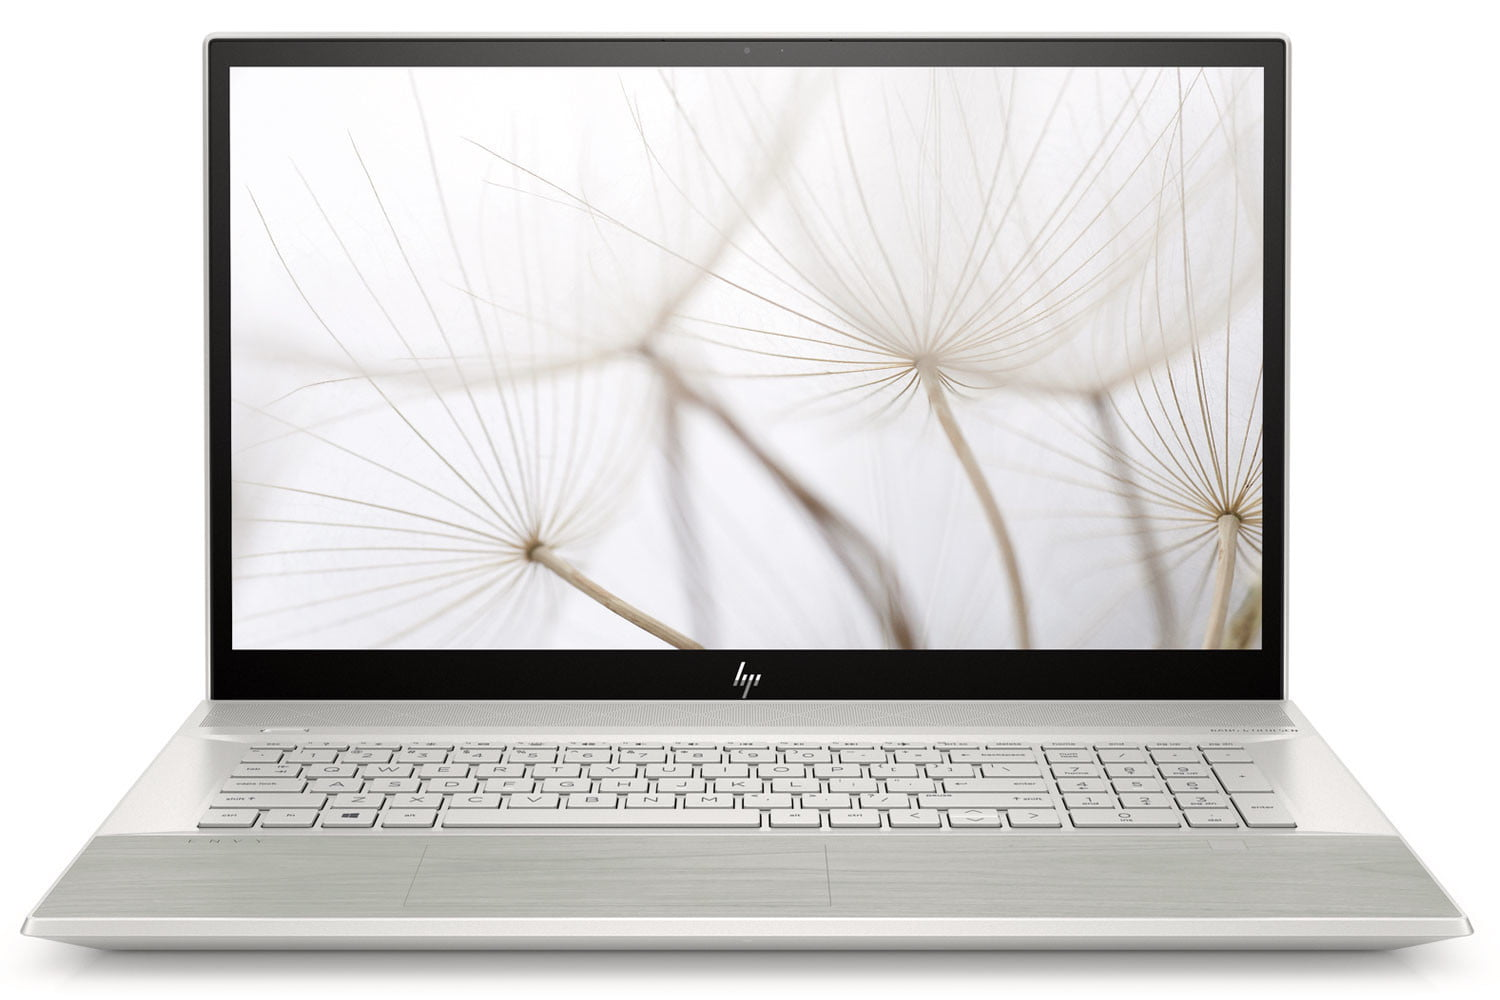 HP Envy 17 with a White Birch finish.